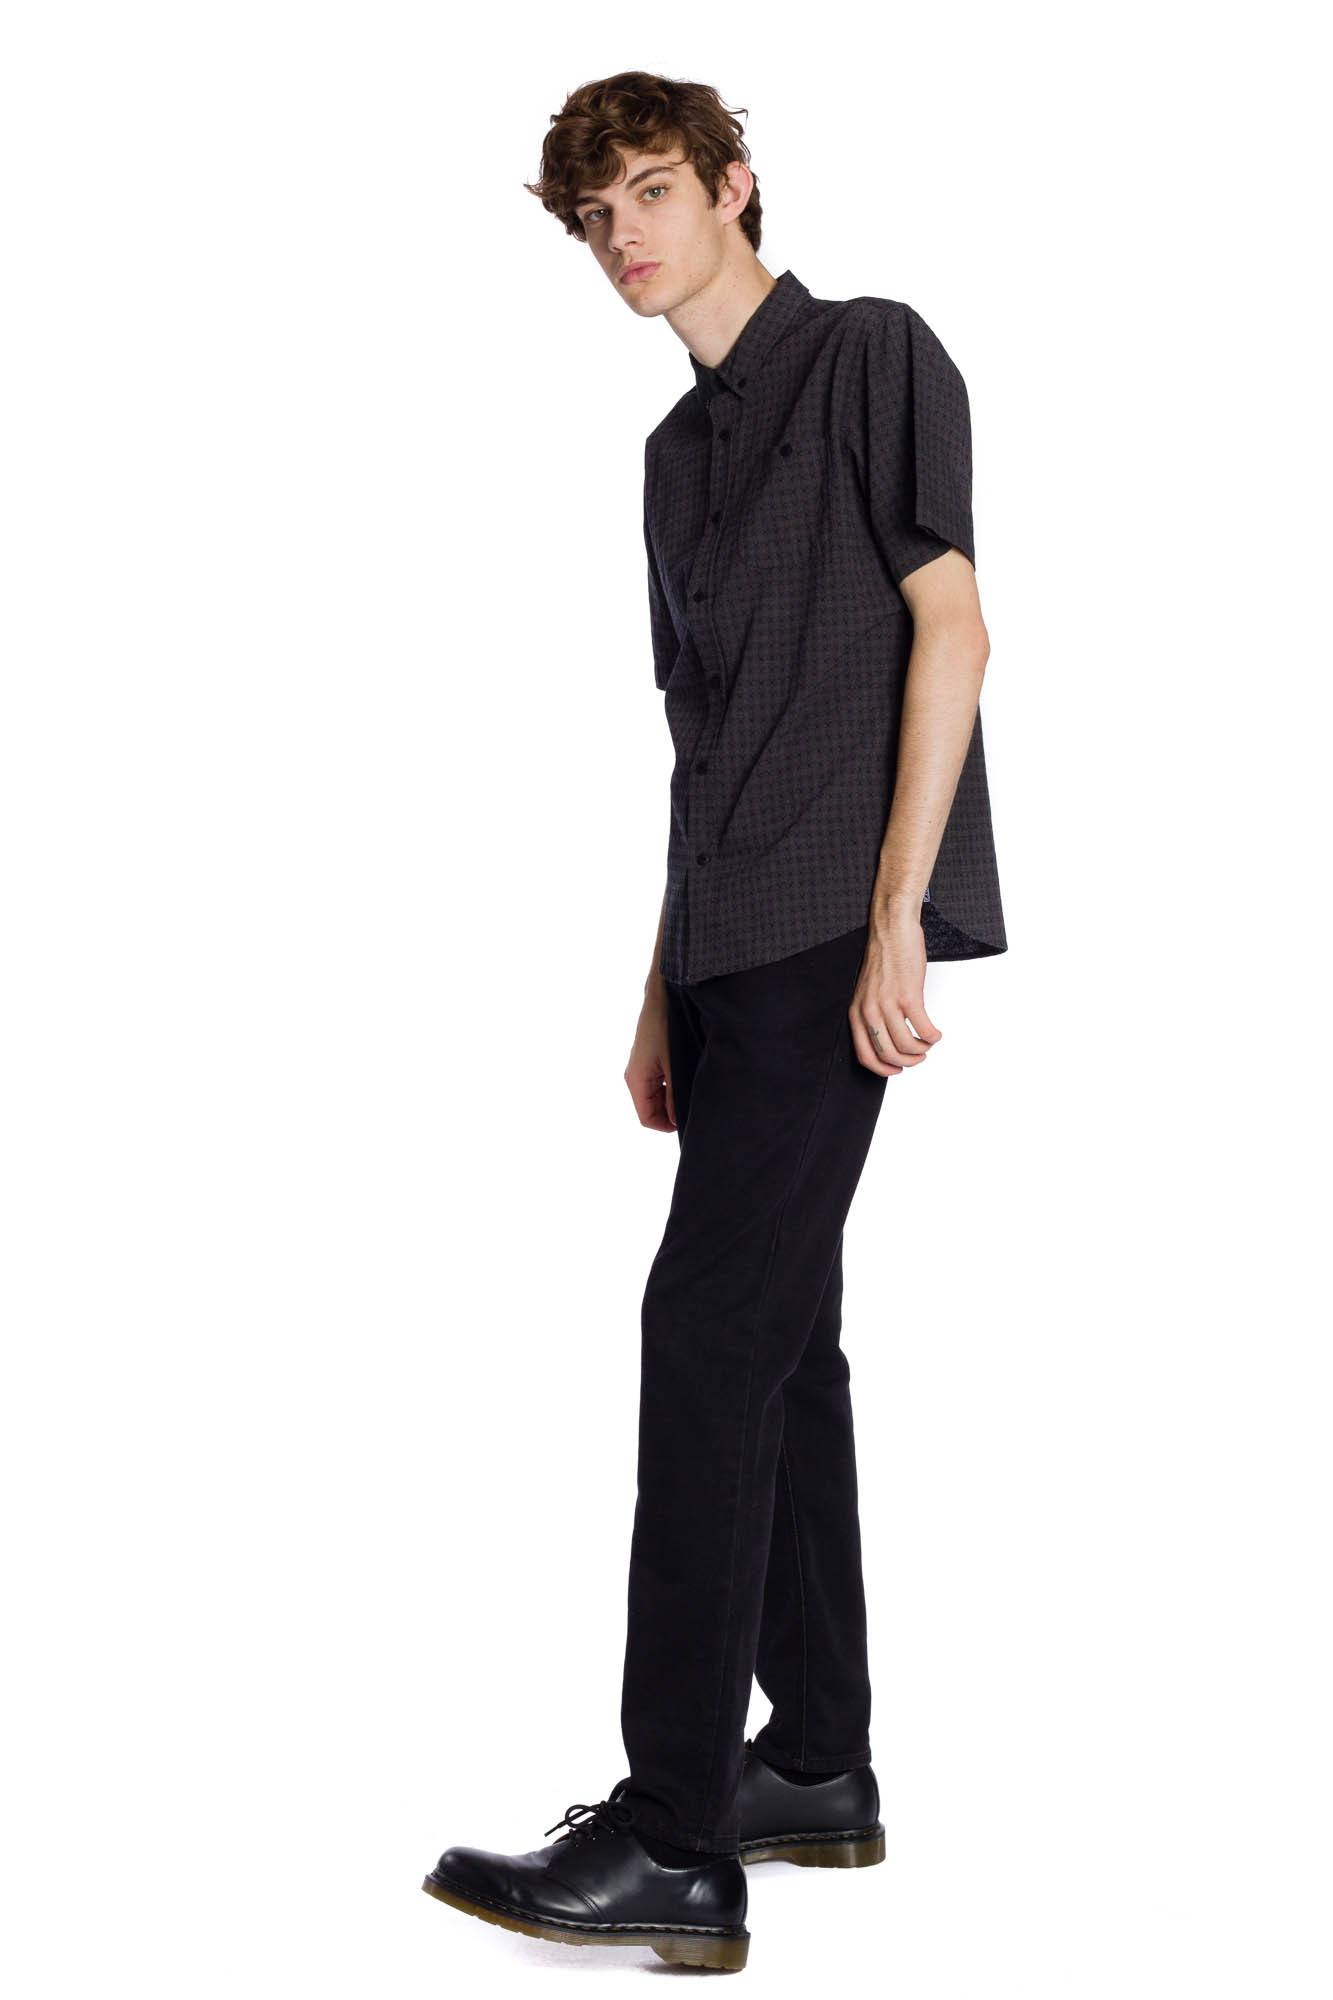 Franklin Short Sleeve Shirt - Black